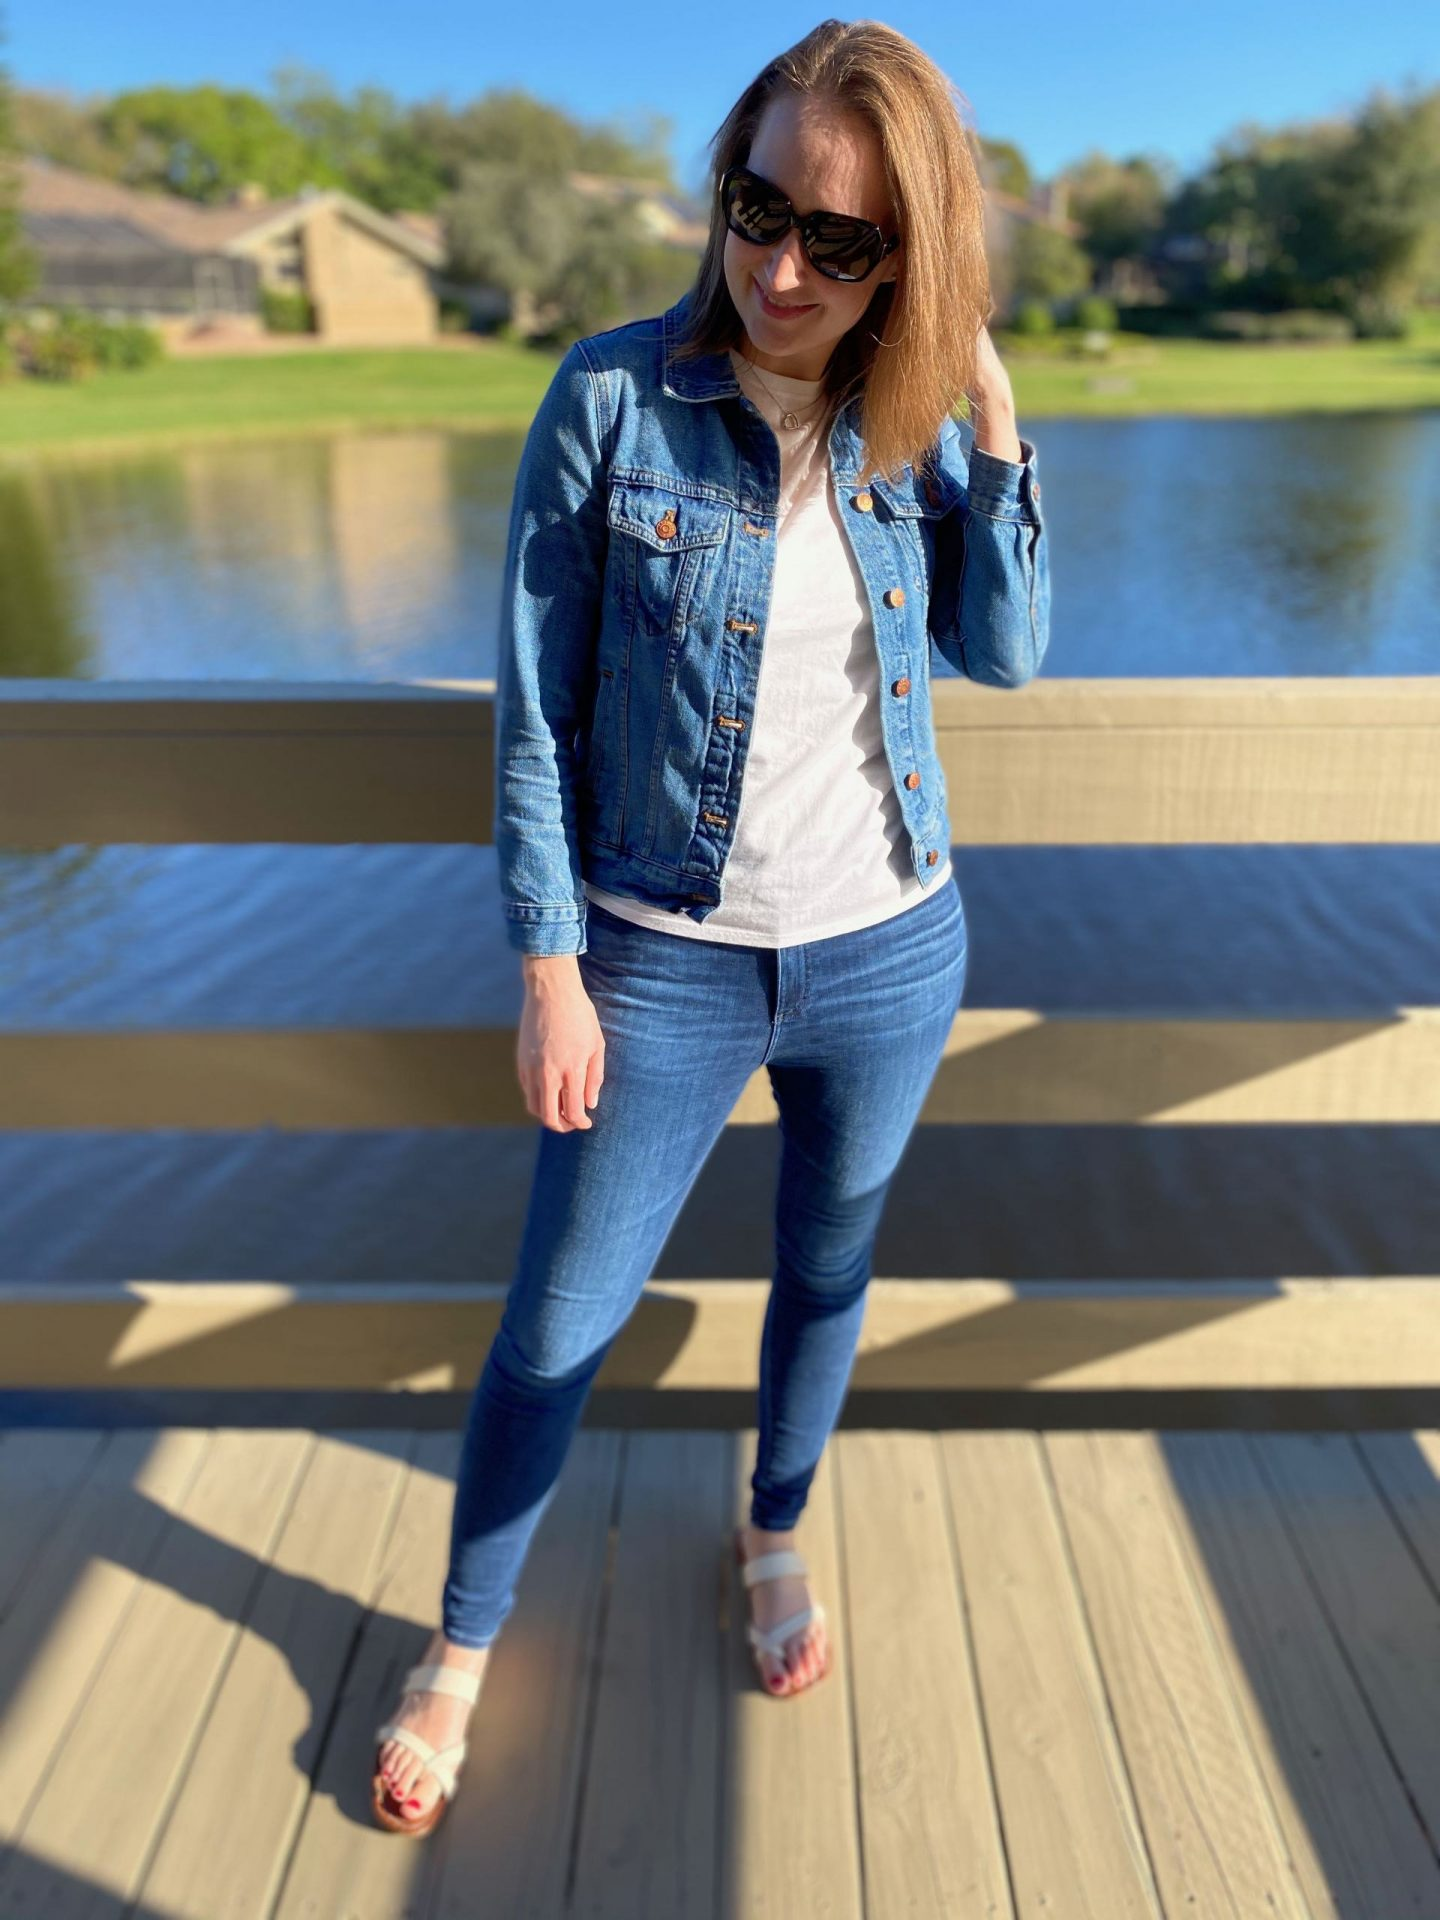 Casual White Tee with Jean Jacket   3 Spring Jean Jacket Outfits   The Spectacular Adventurer